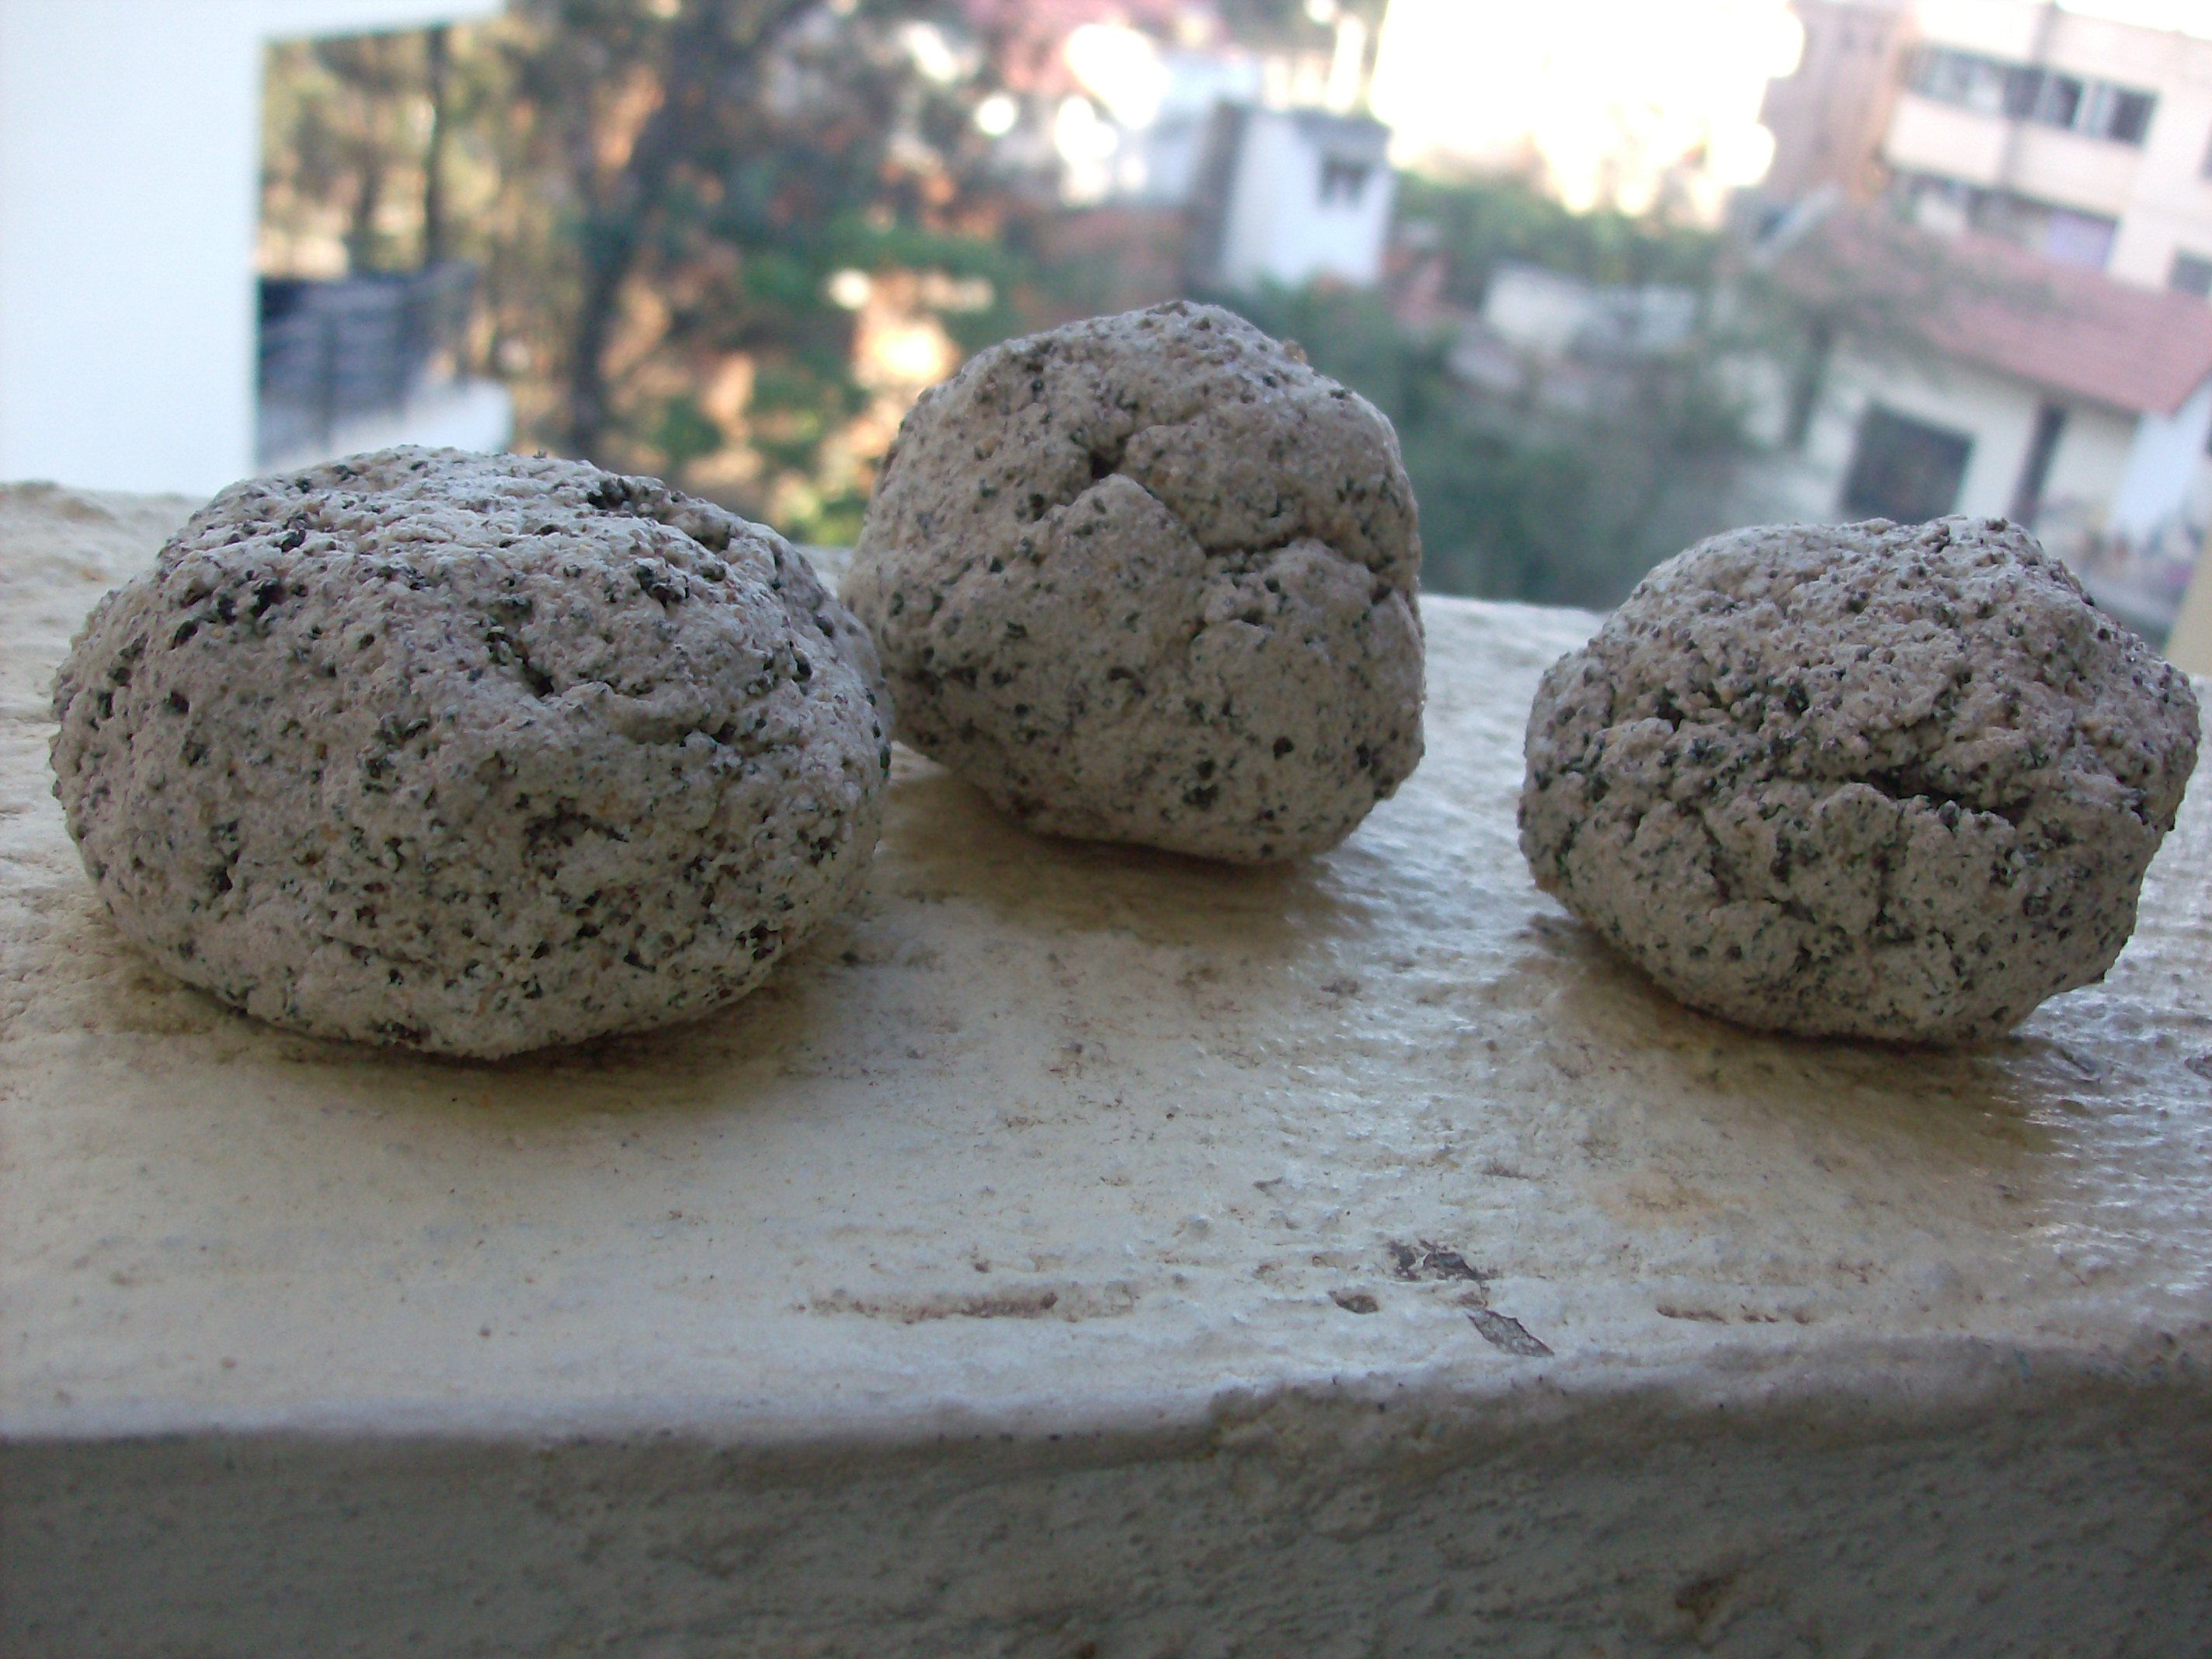 St. Patrick's Day Rocks: The Blarney Stone